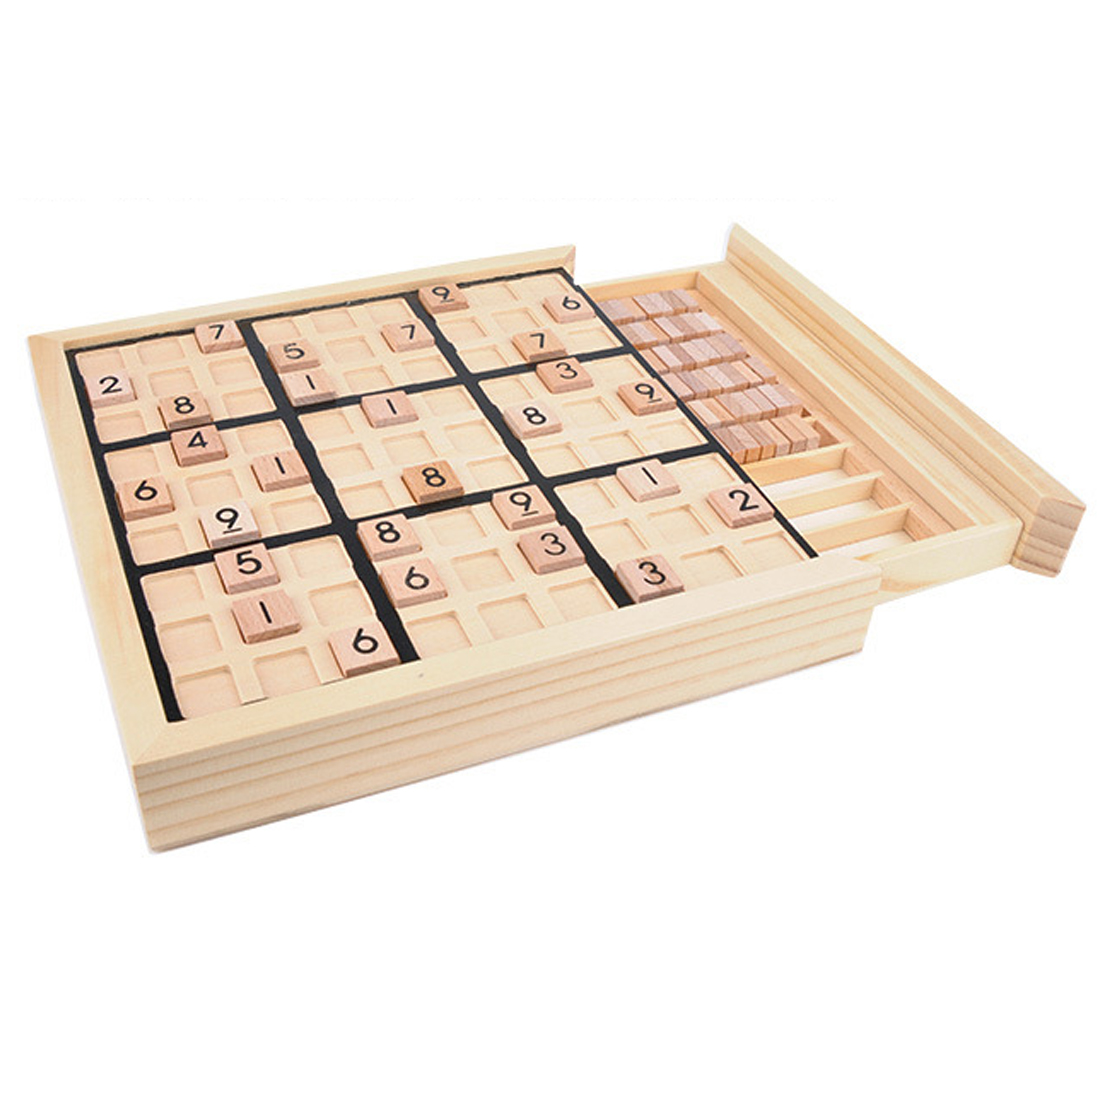 Sudoku Cube Number Game Sudoku Puzzles for Kids Jigsaw Puzzle Table Game Children Learning Educational Toys go games absolutely addictive sudoku